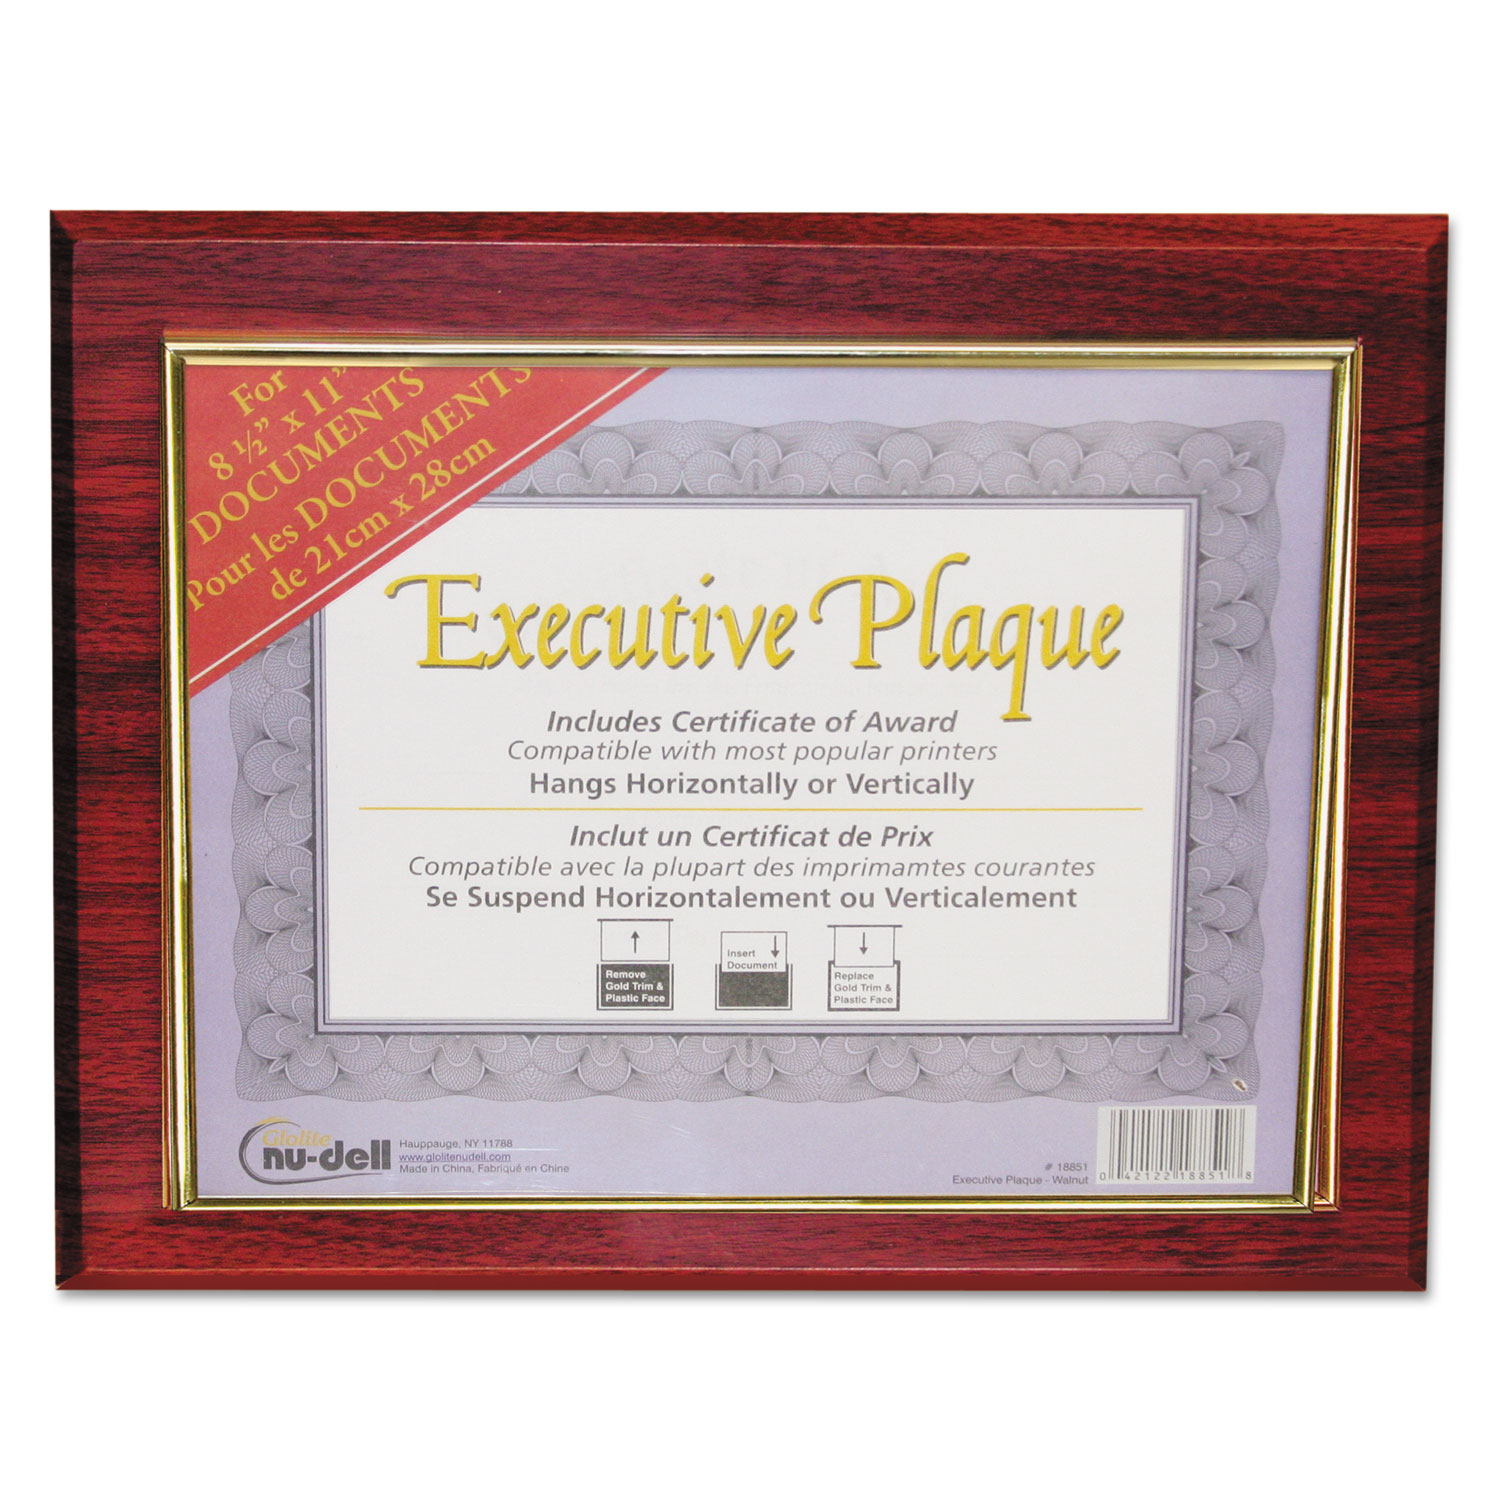 executive plaque by nudell nud18853m. Black Bedroom Furniture Sets. Home Design Ideas